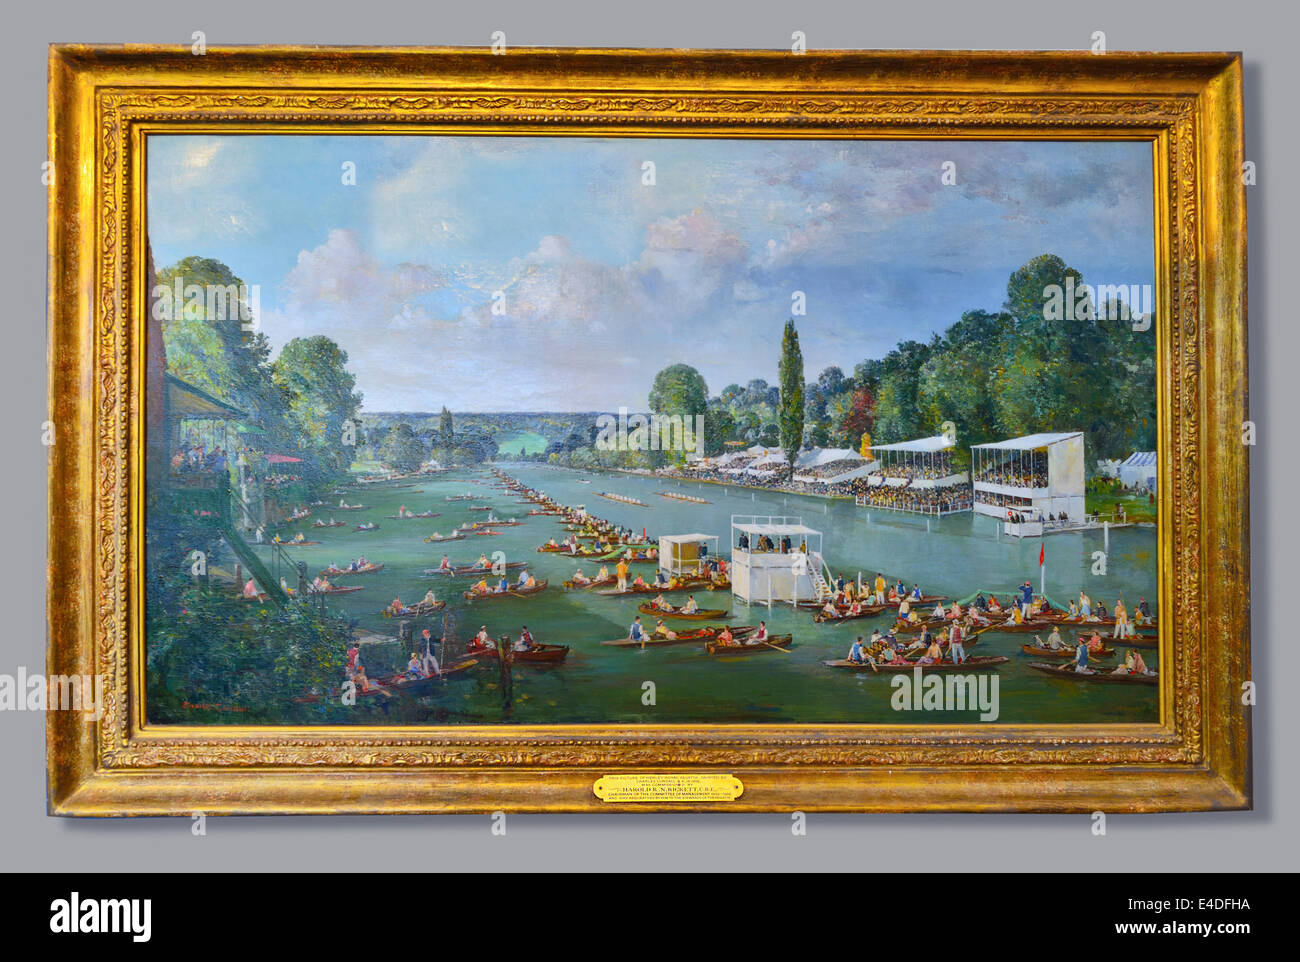 Painting of the first Henley Regatta in 1839 later named Henley Royal Regatta with royal patronage - Stock Image